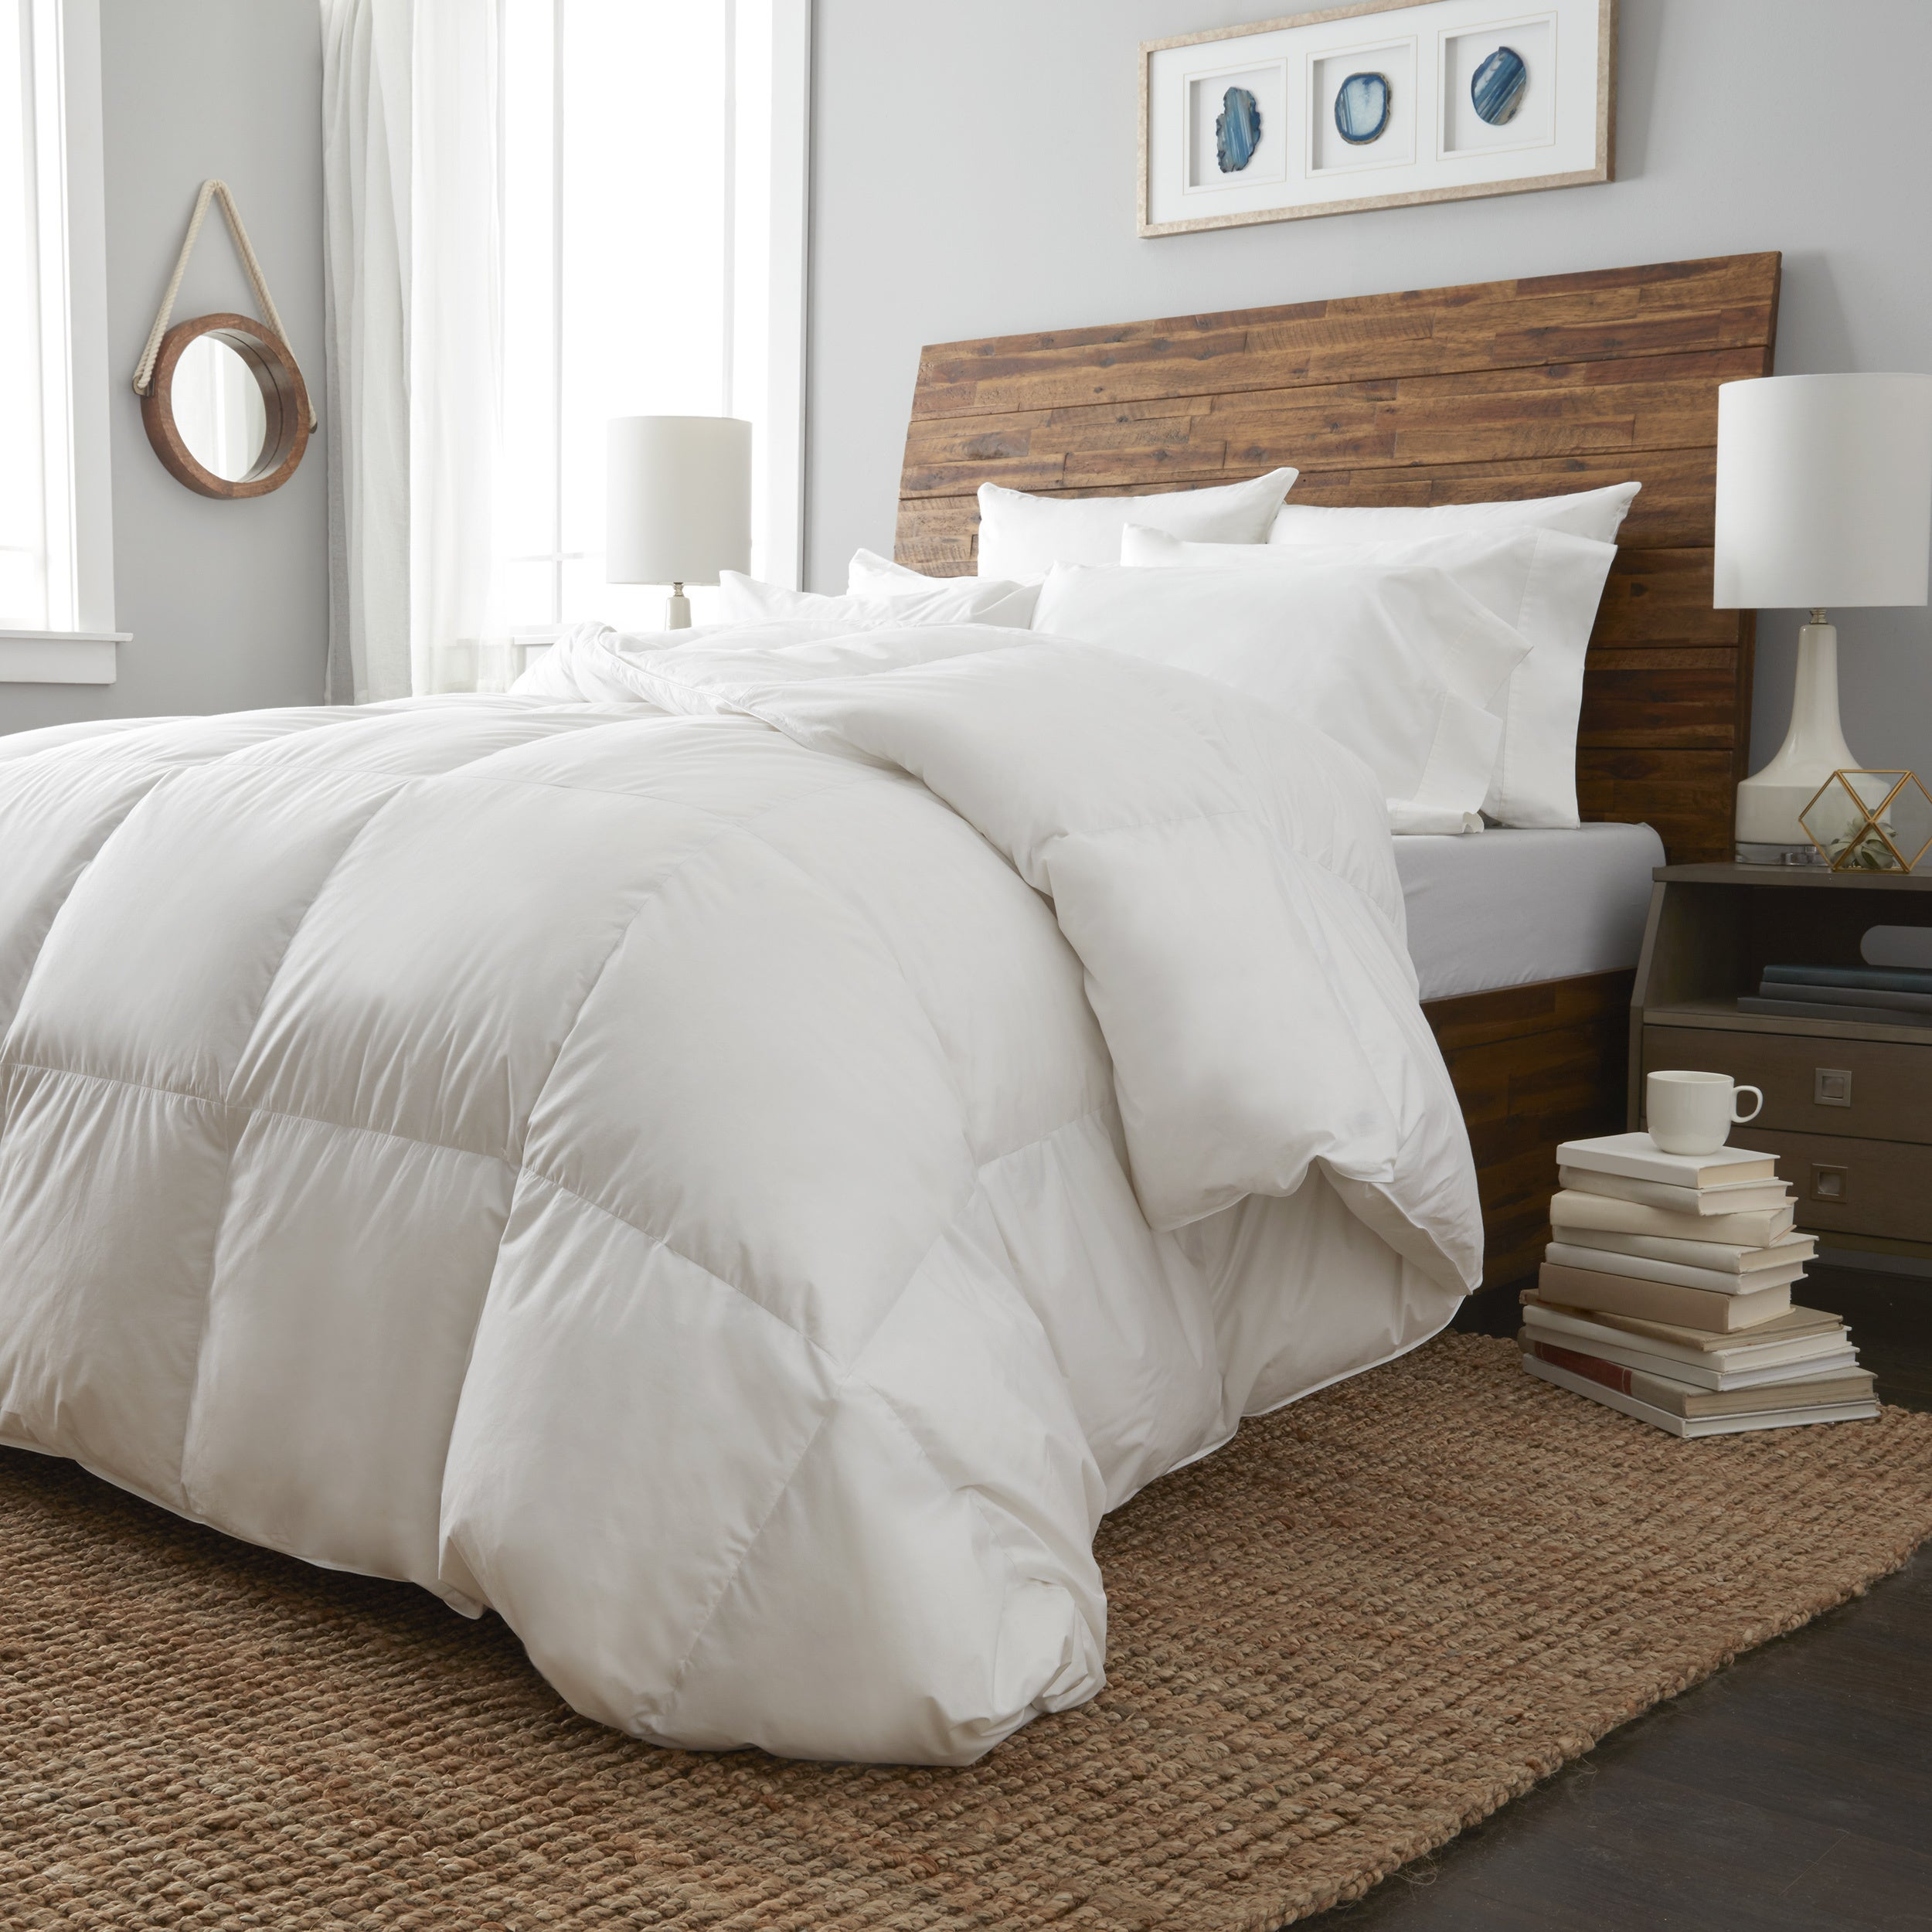 puredown overstock thread comforter st hungarian home heavy free product james down bath count cotton fill bedding today goose shipping white